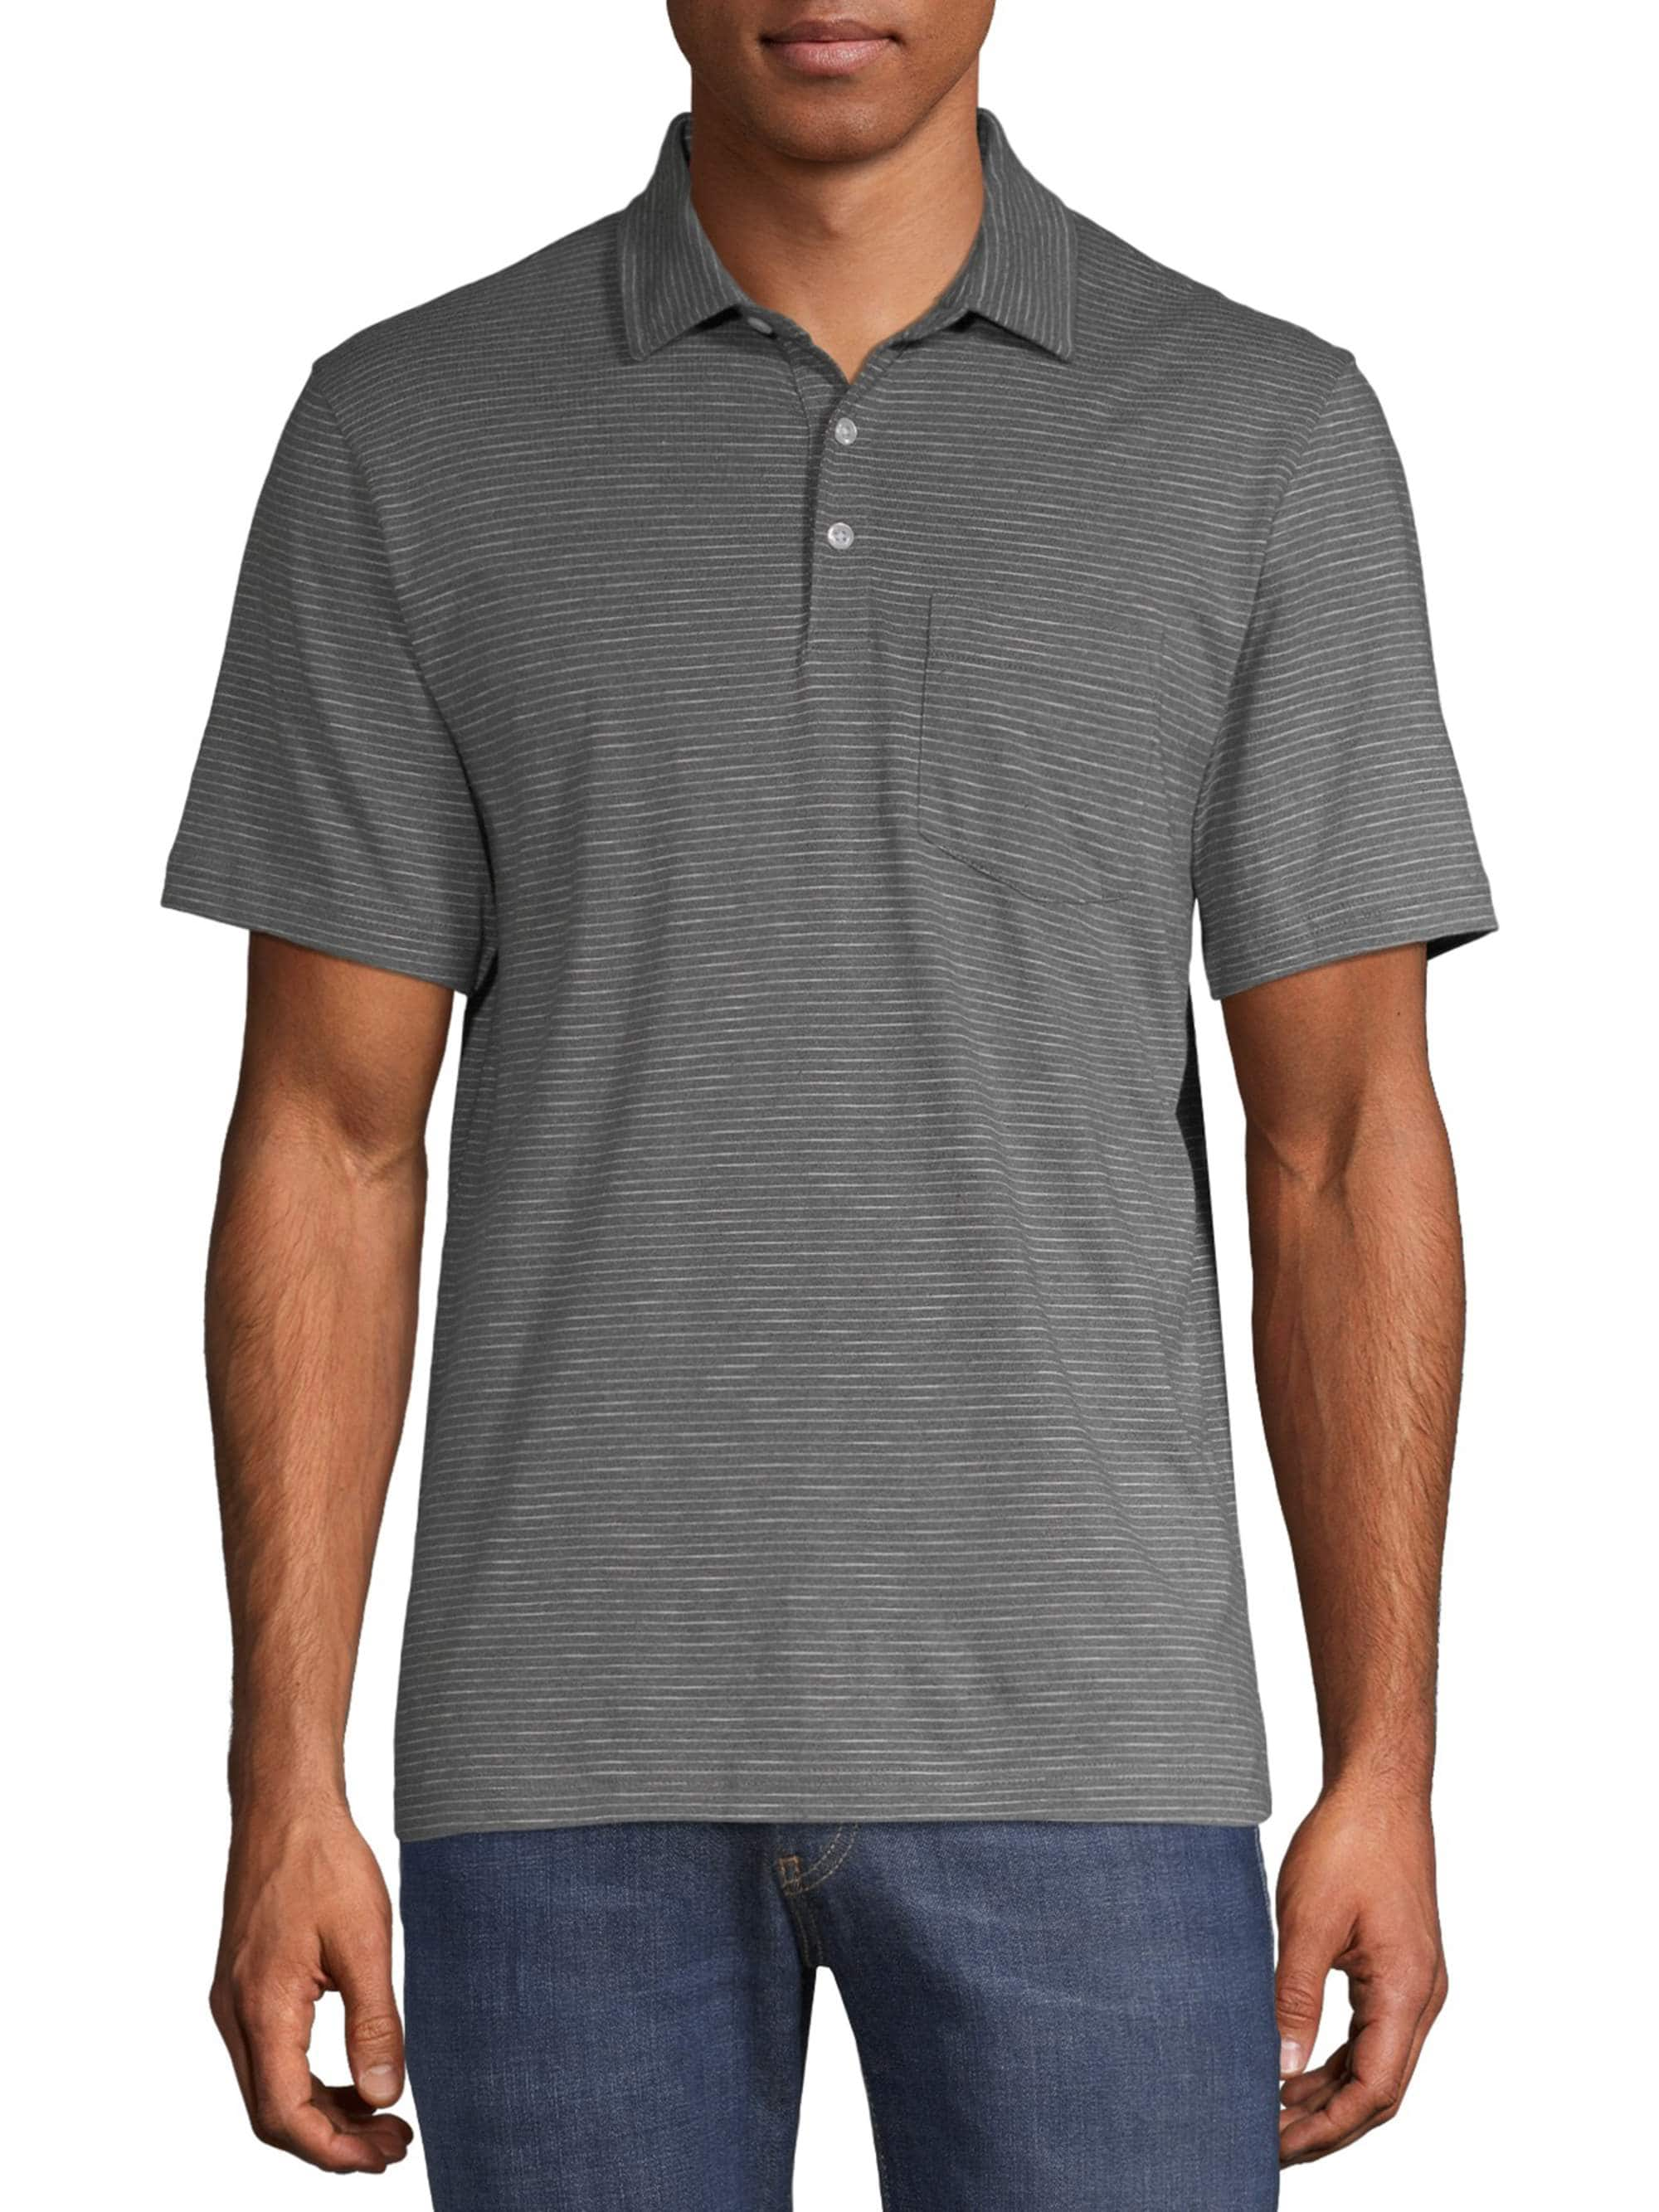 George Men's Jersey Short Sleeve Polo Shirt $5.50 + Free Store Pickup at Walmart or FS on $35+